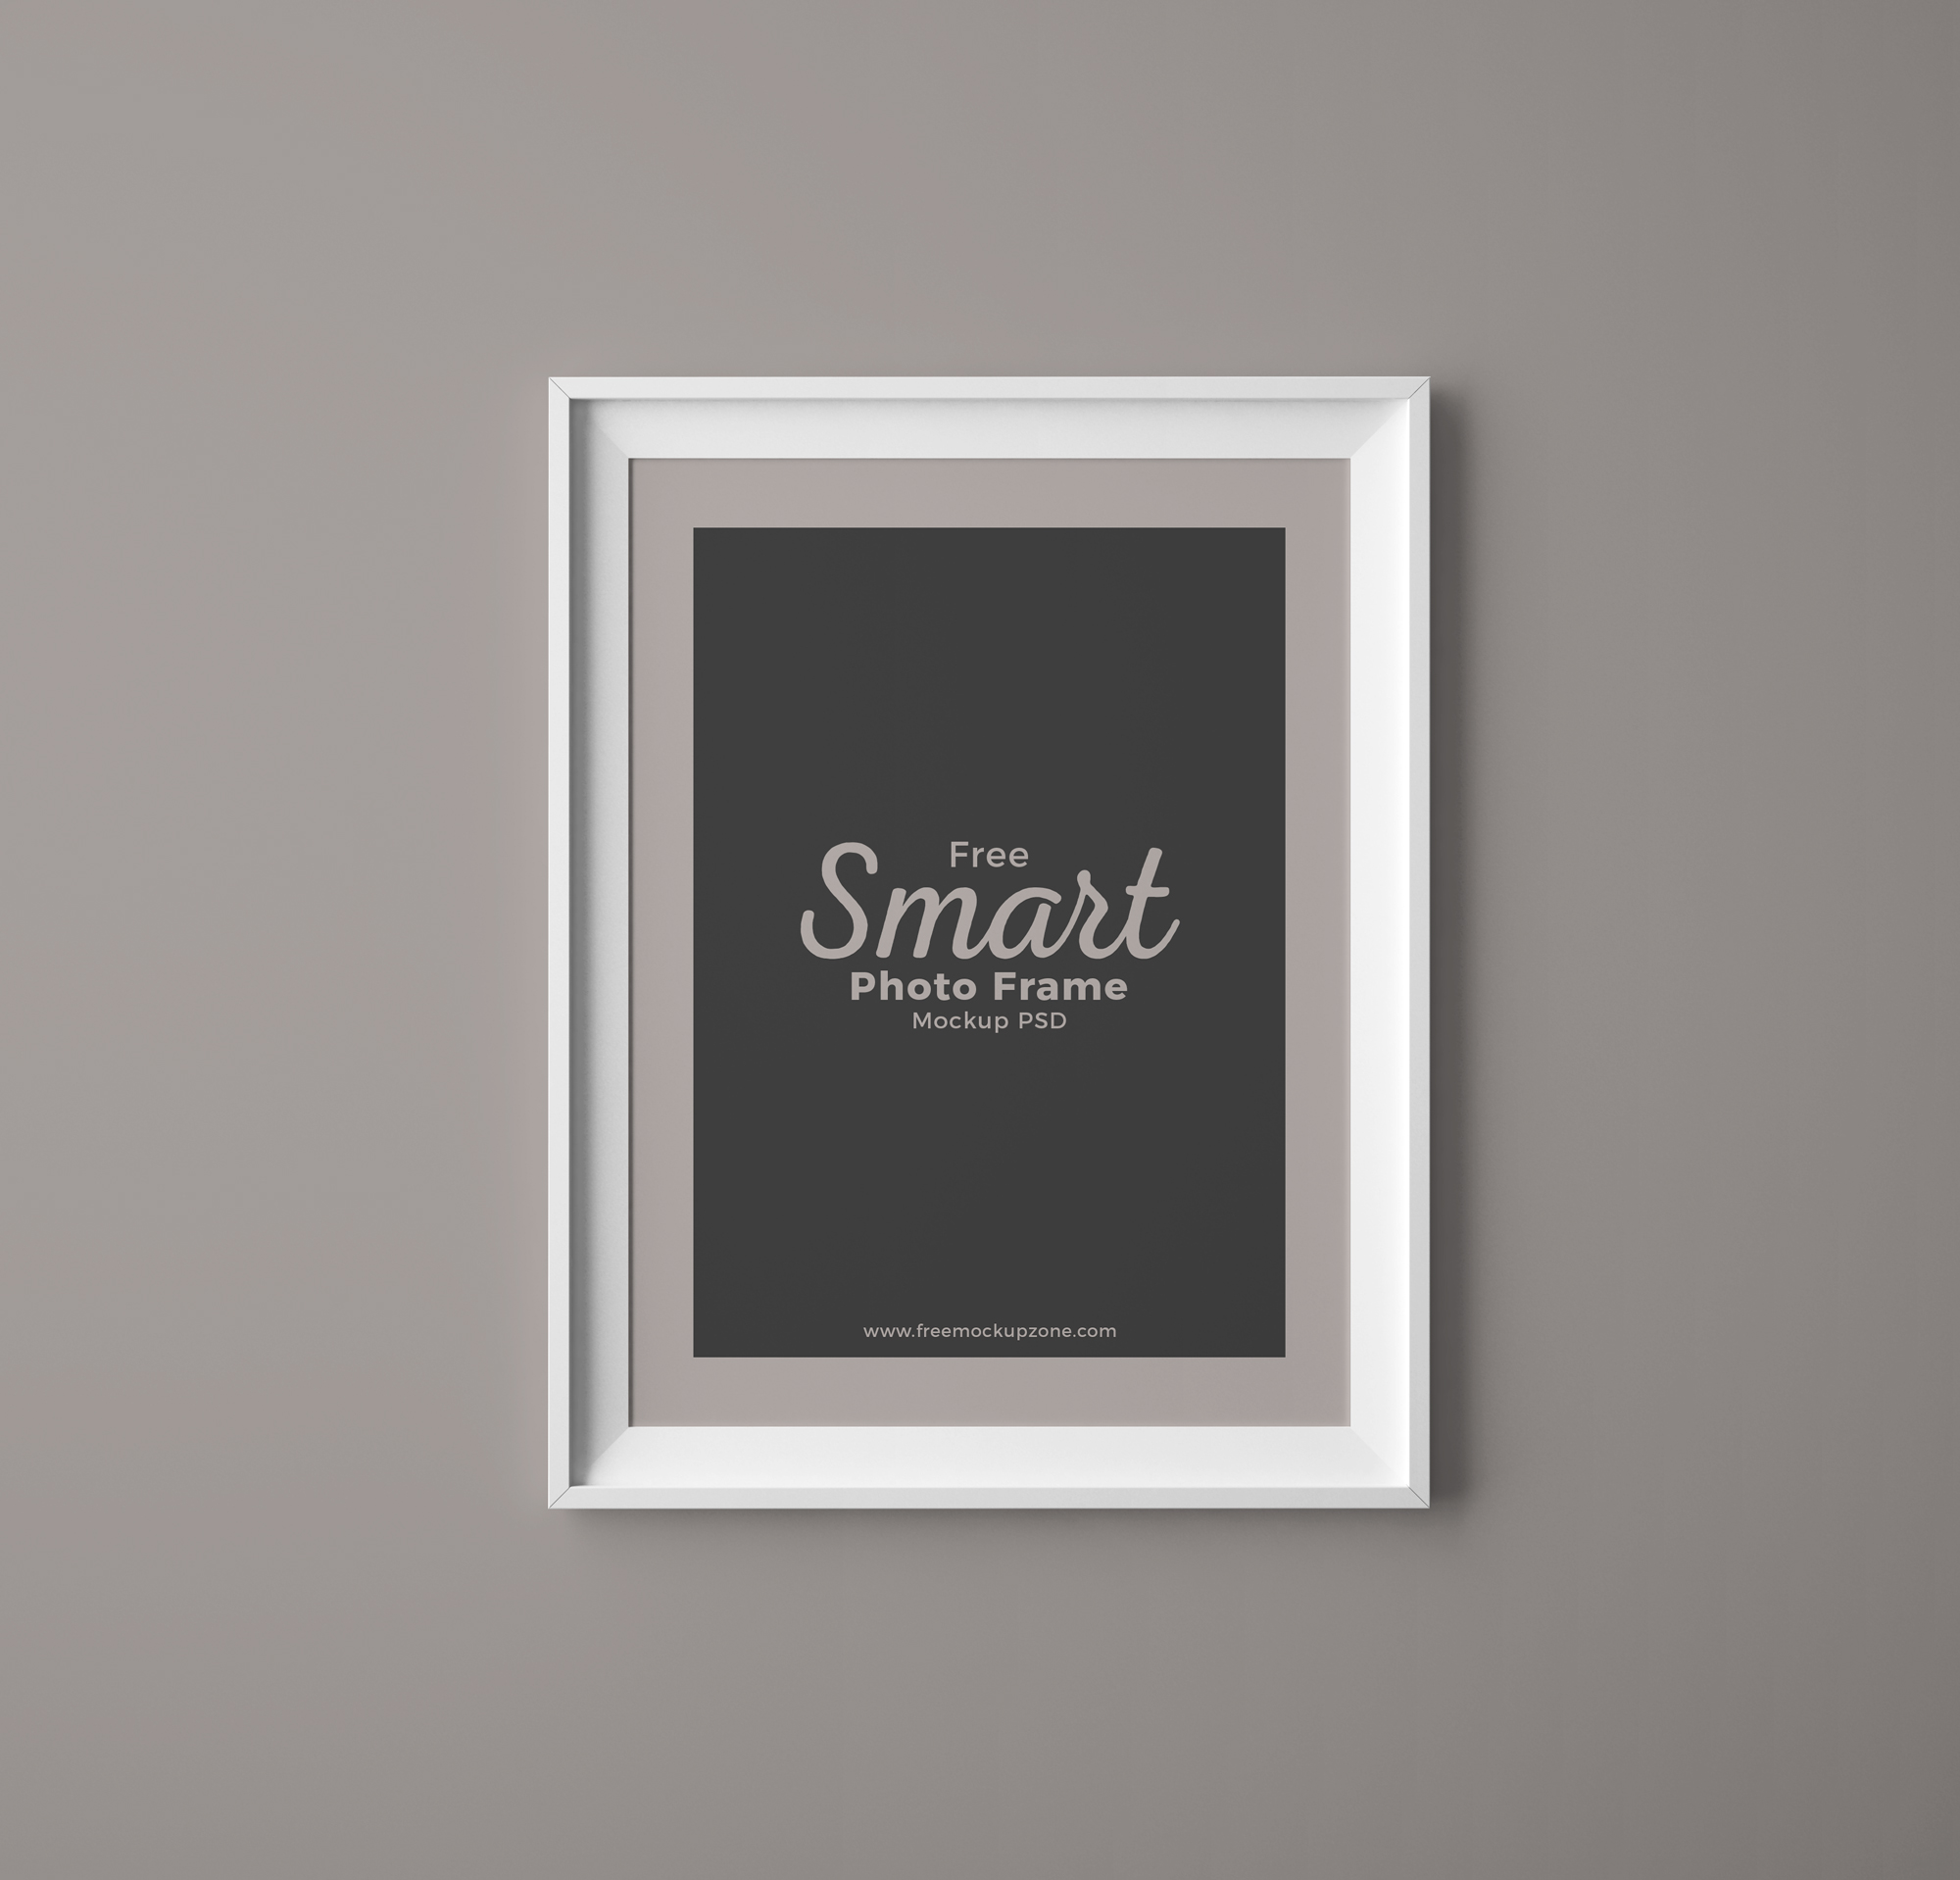 free smart photo frame mockup psd. Black Bedroom Furniture Sets. Home Design Ideas